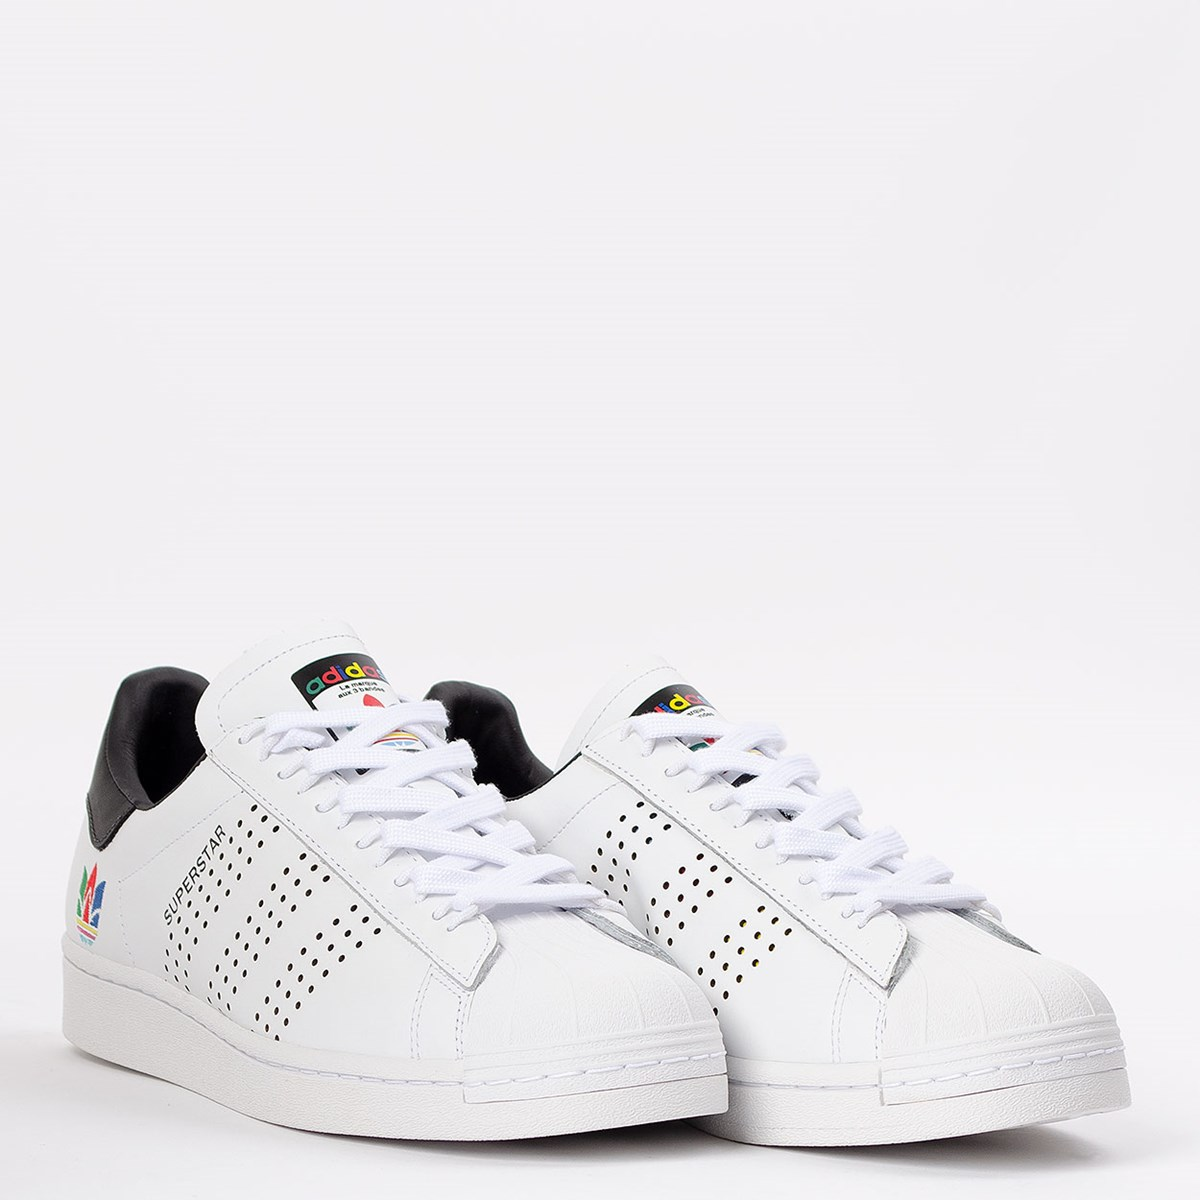 Tênis adidas Superstar Ftwr White Green Core Black FW5388